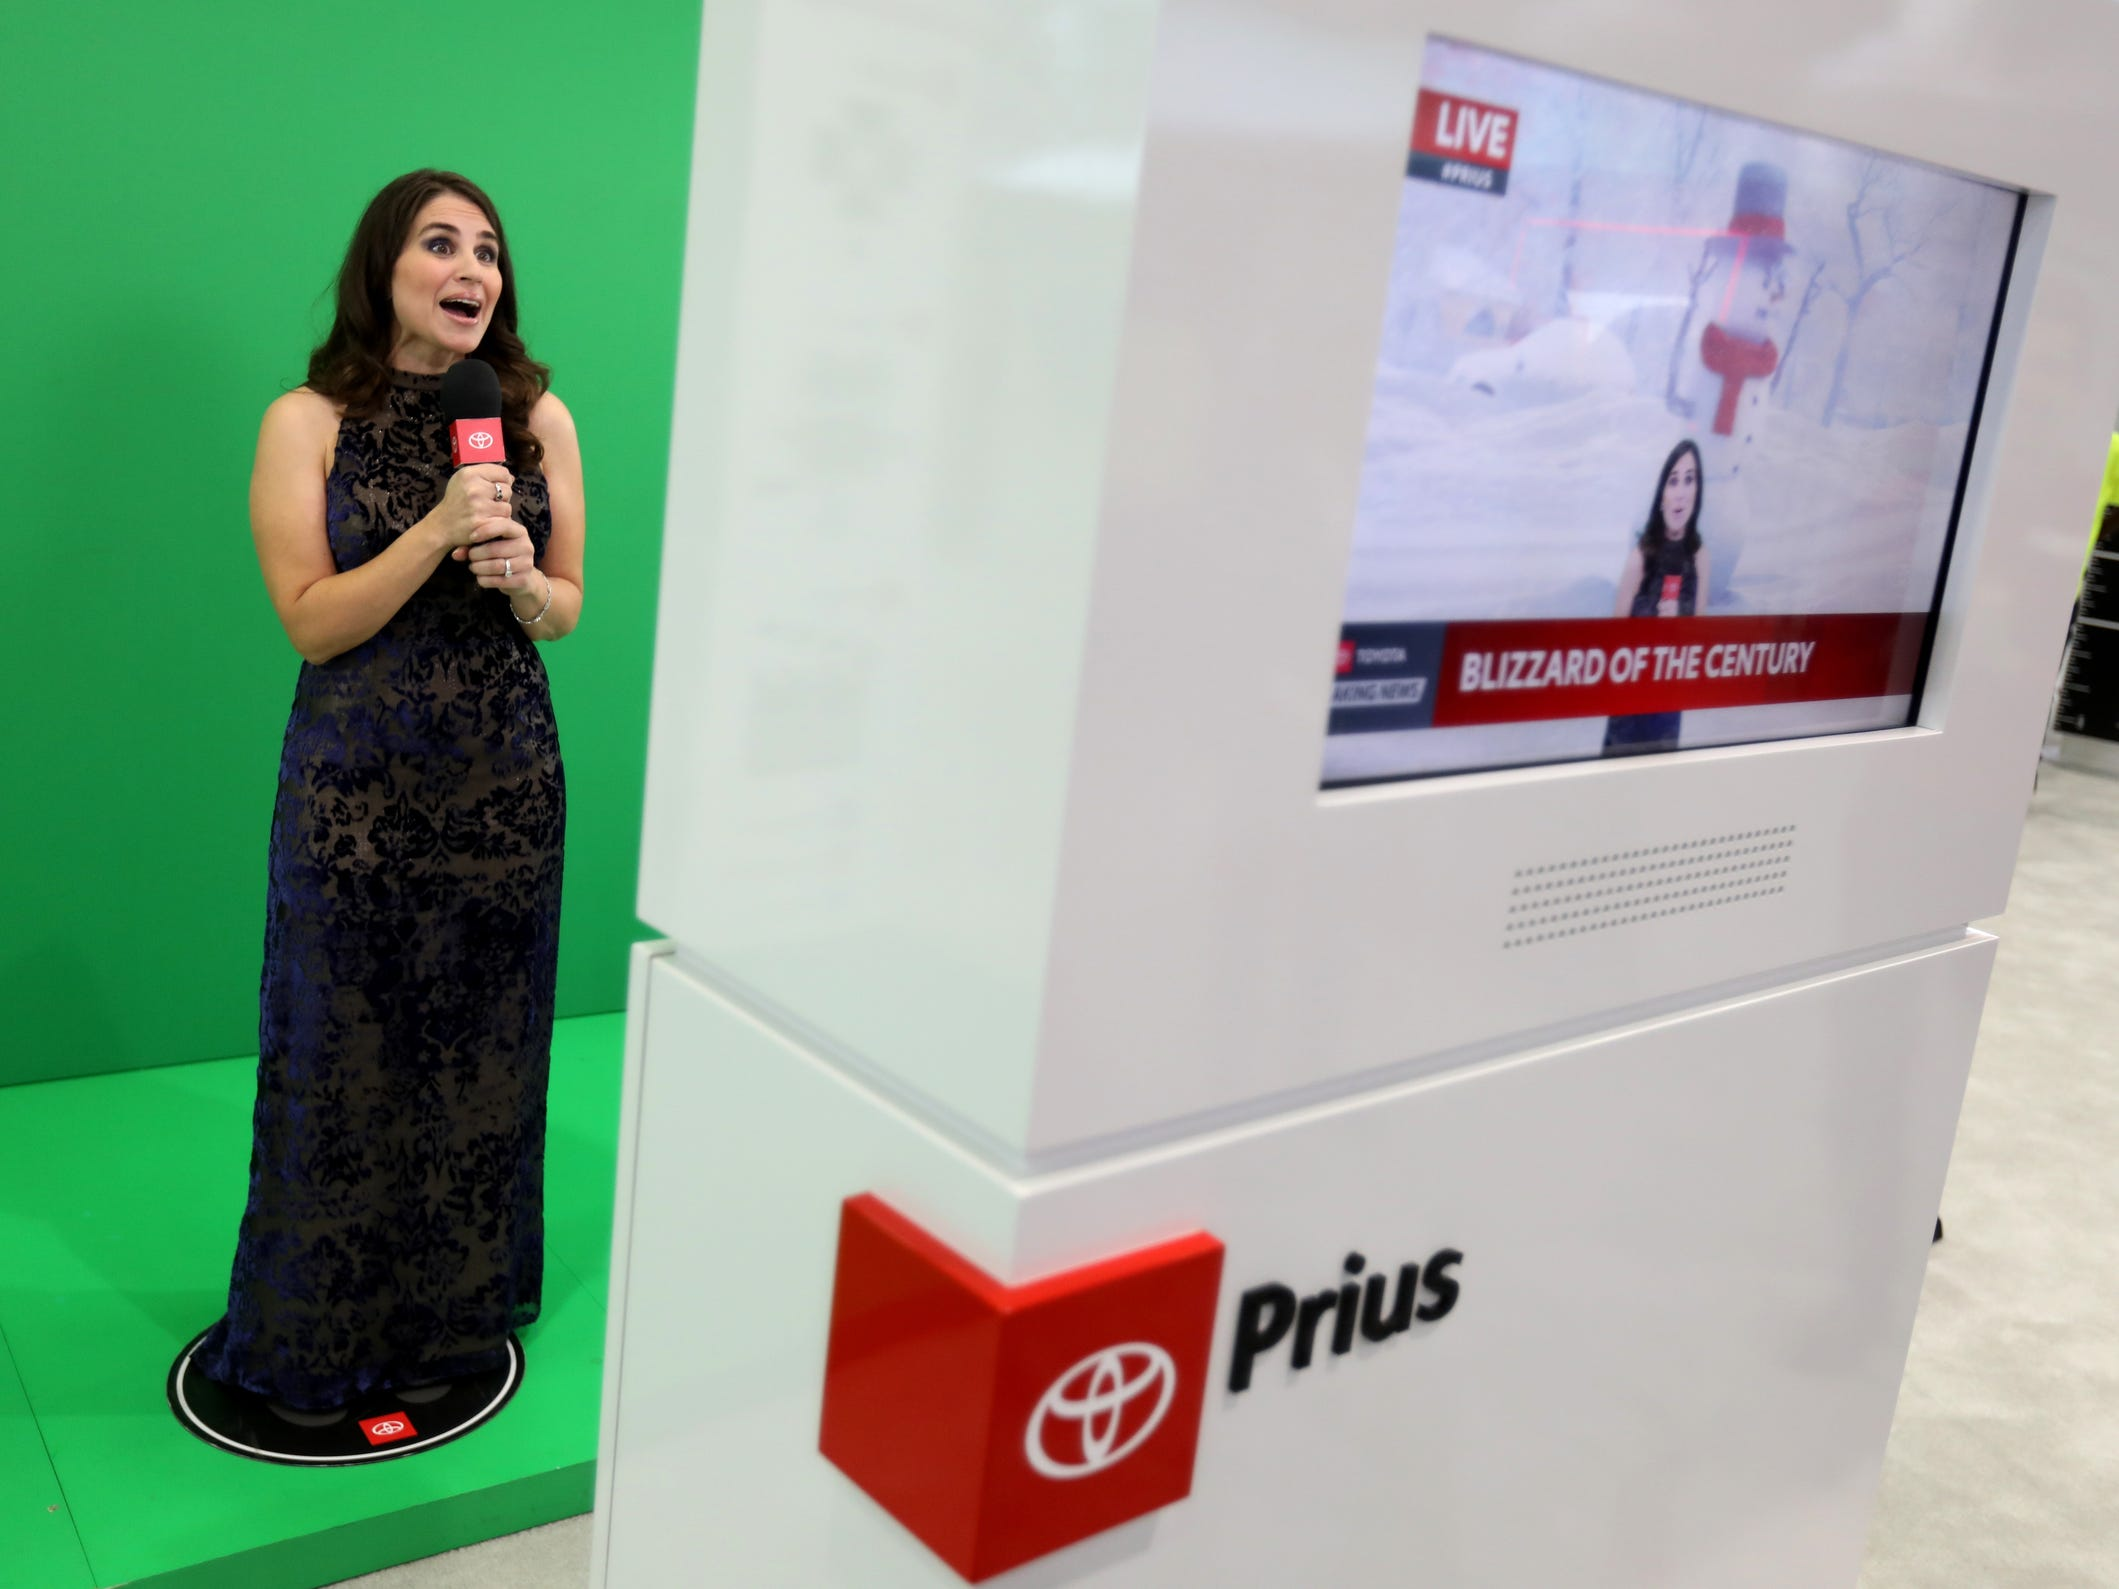 Jennifer Bryant, 47 of Farmington Hills gets into being a meteorologist as she reports the weather at the Toyota Prius location during the 2019 North American International Auto Show Charity Preview at Cobo Center in Detroit on Friday, January 18, 2019.